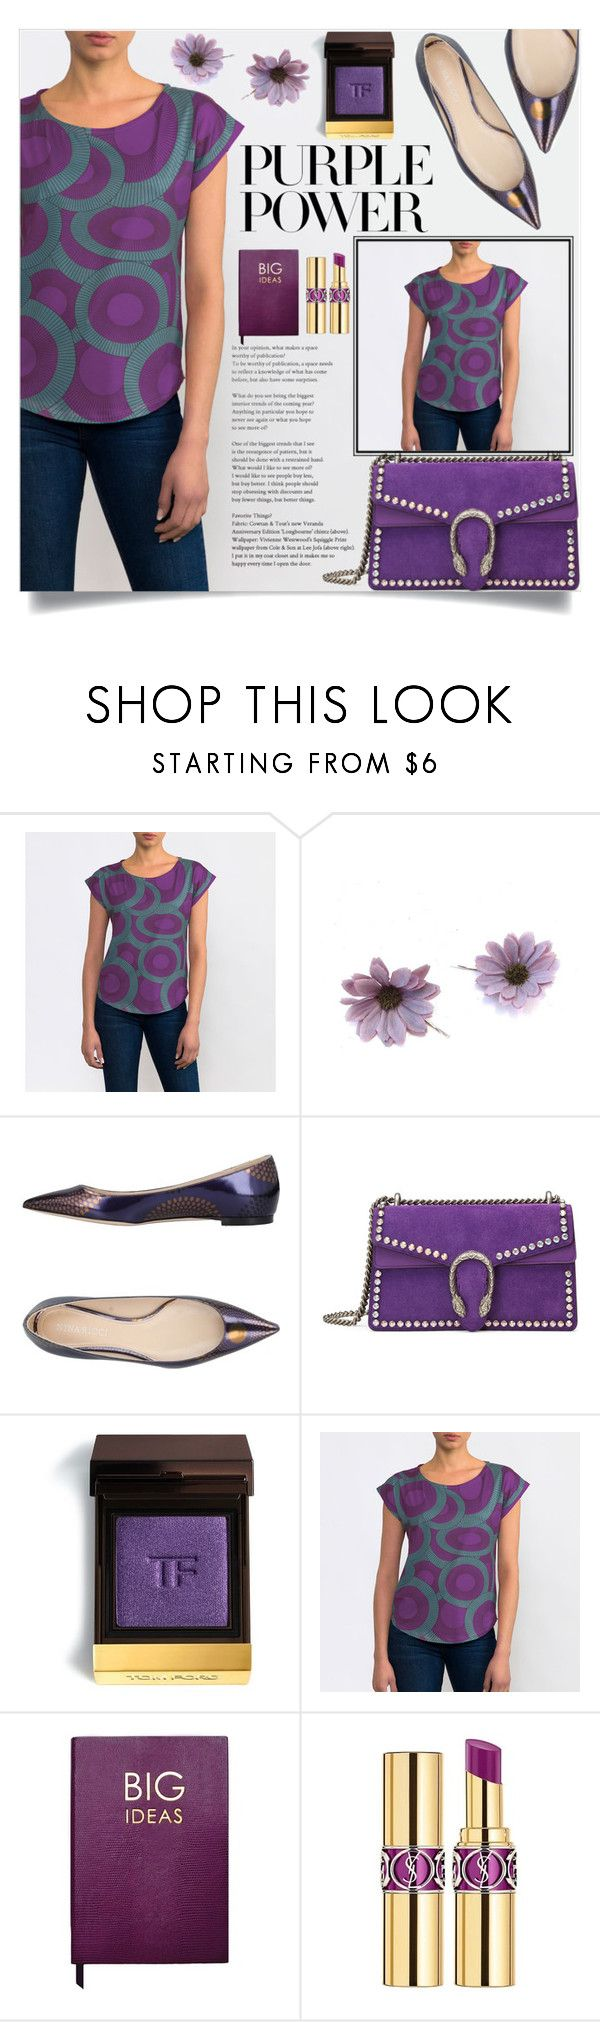 """International Women's Day: Purple Power"" by samra-bv ❤ liked on Polyvore featuring ULTA, Nina Ricci, Gucci, Tom Ford, Sloane Stationery and Yves Saint Laurent"